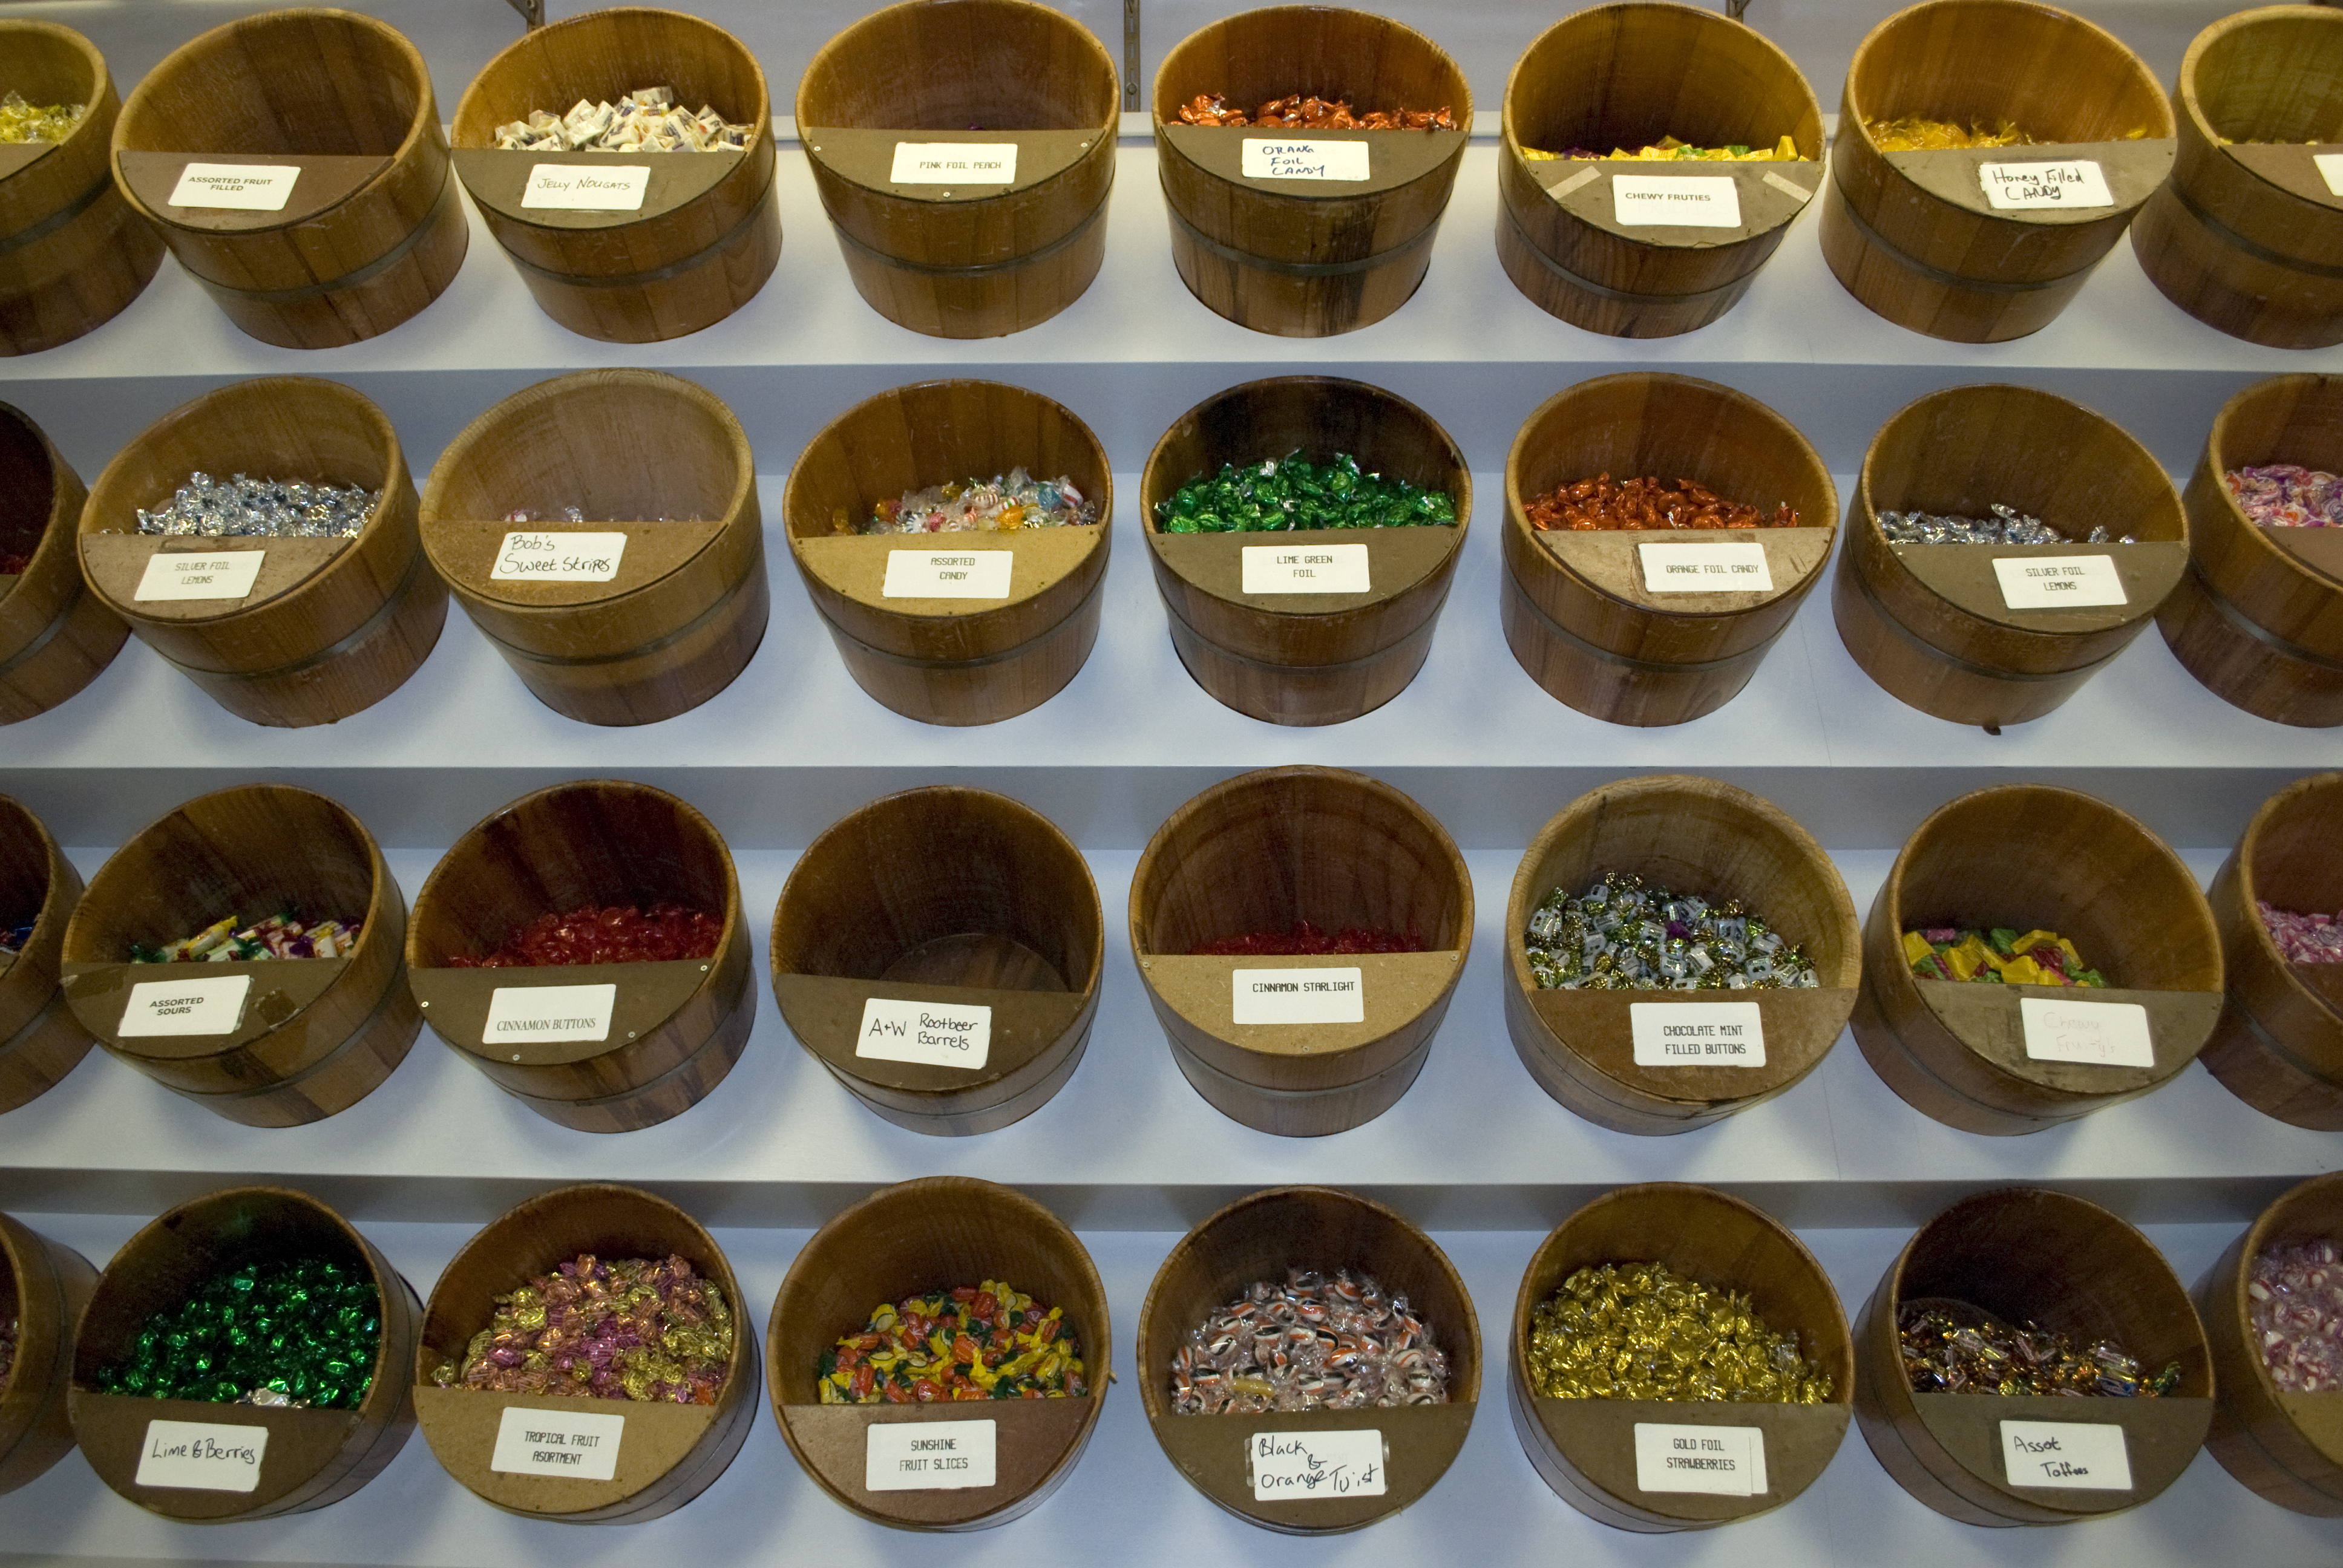 Candy Store, Candy, Containers, Display, Rack, HQ Photo